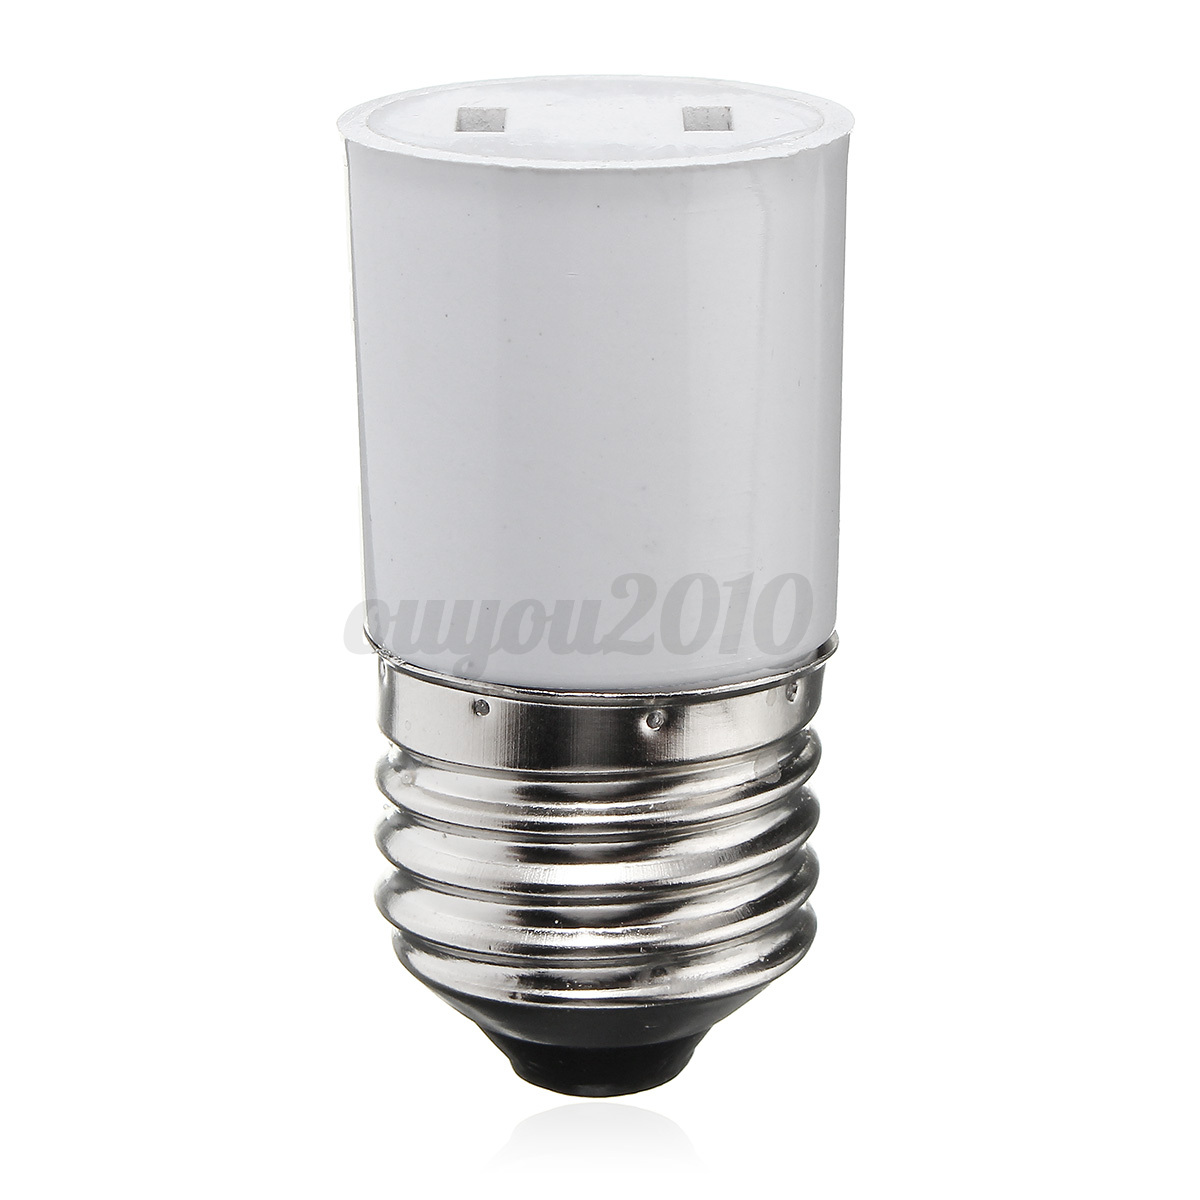 b22 e27 light lamp bulb socket holder convert to us power. Black Bedroom Furniture Sets. Home Design Ideas